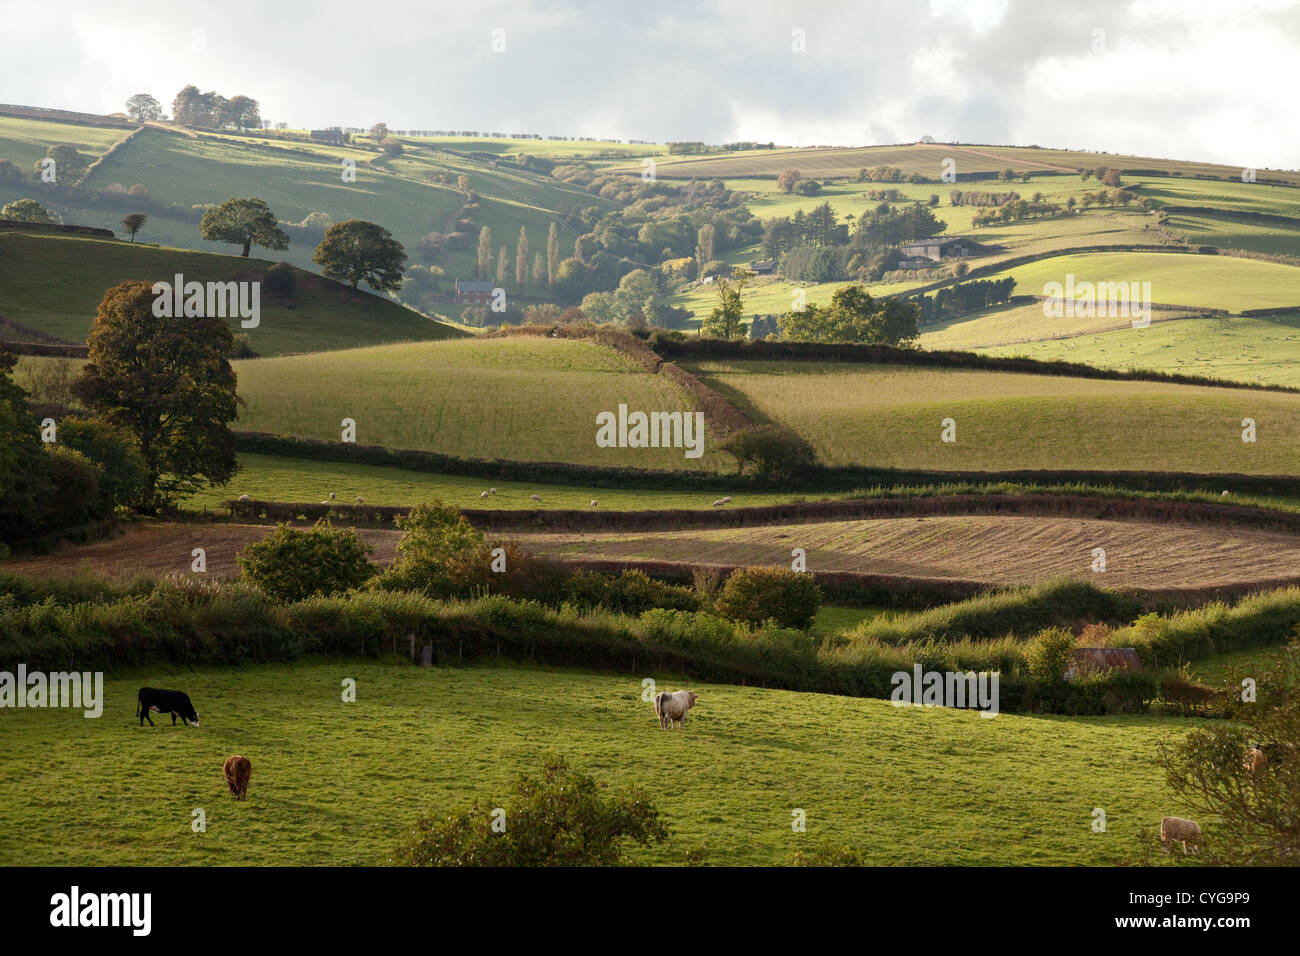 The England countryside in South Shropshire near Clun, Britain UK - Stock Image